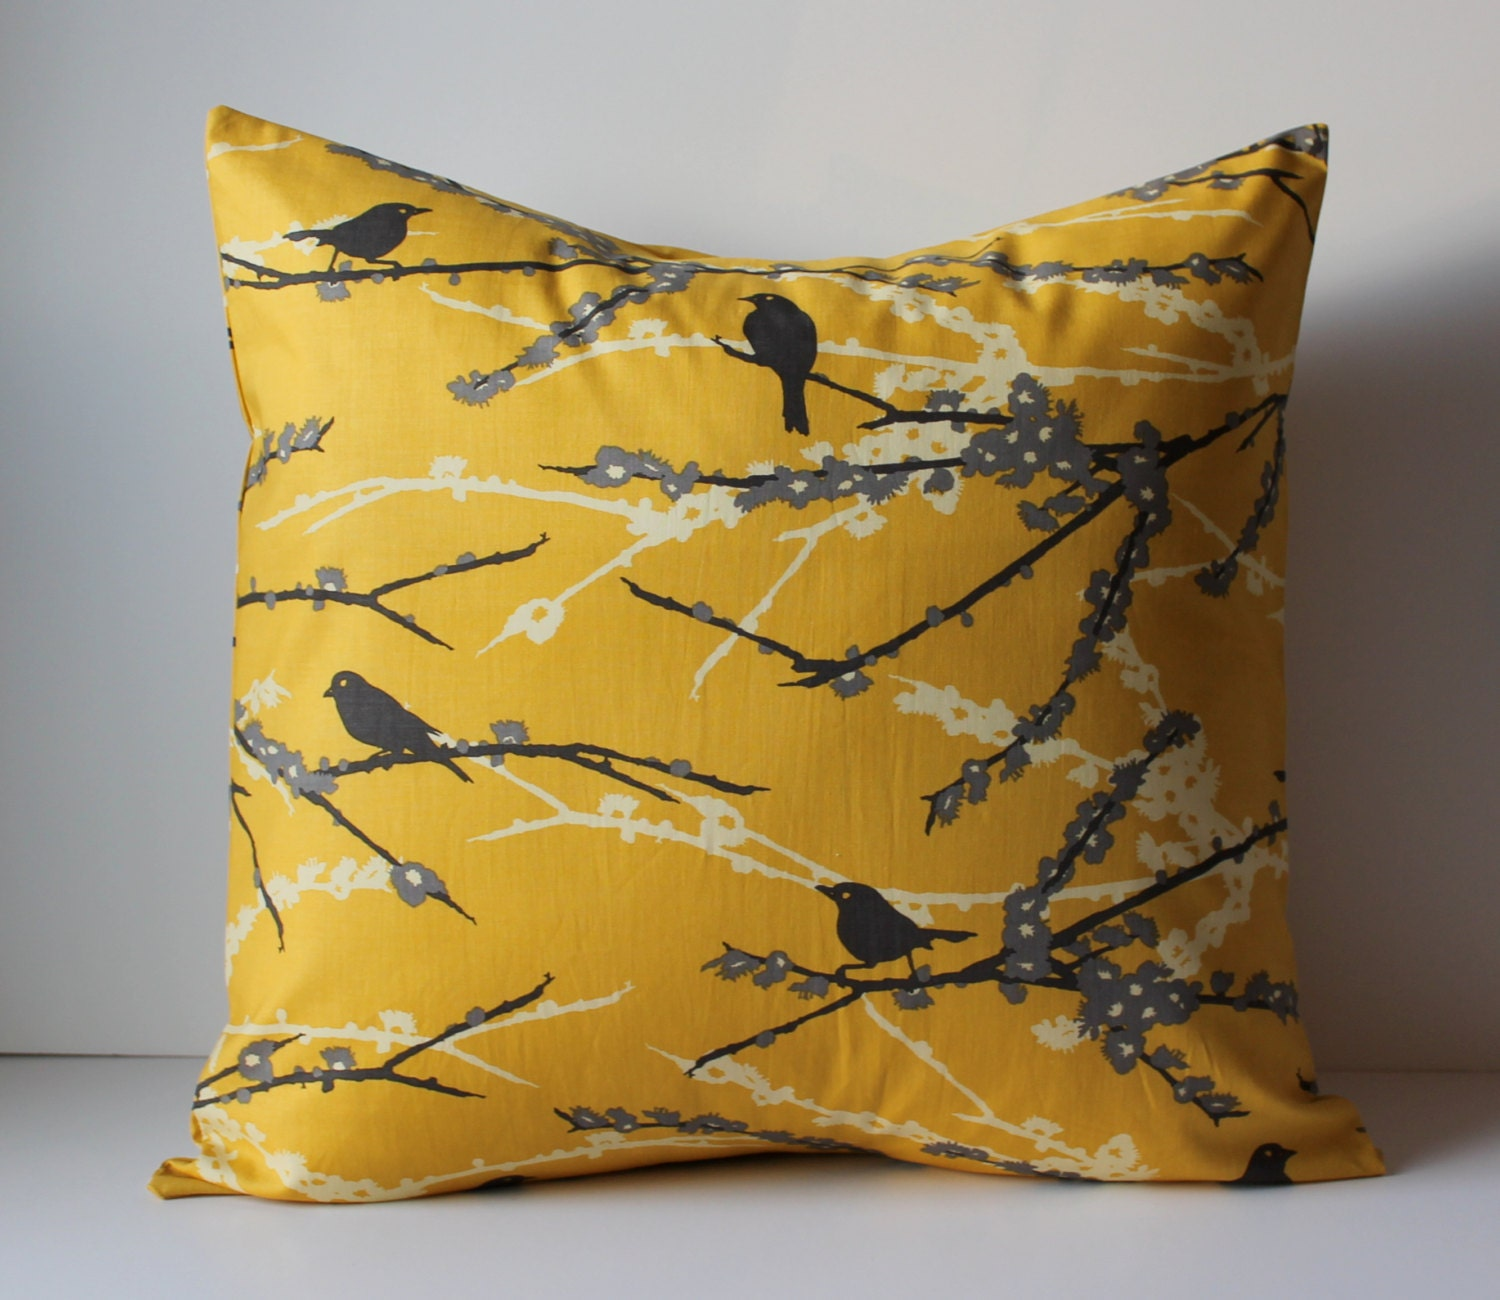 Decorative Pillows Cushion Cover Mustard Yellow Amp Gray Birds